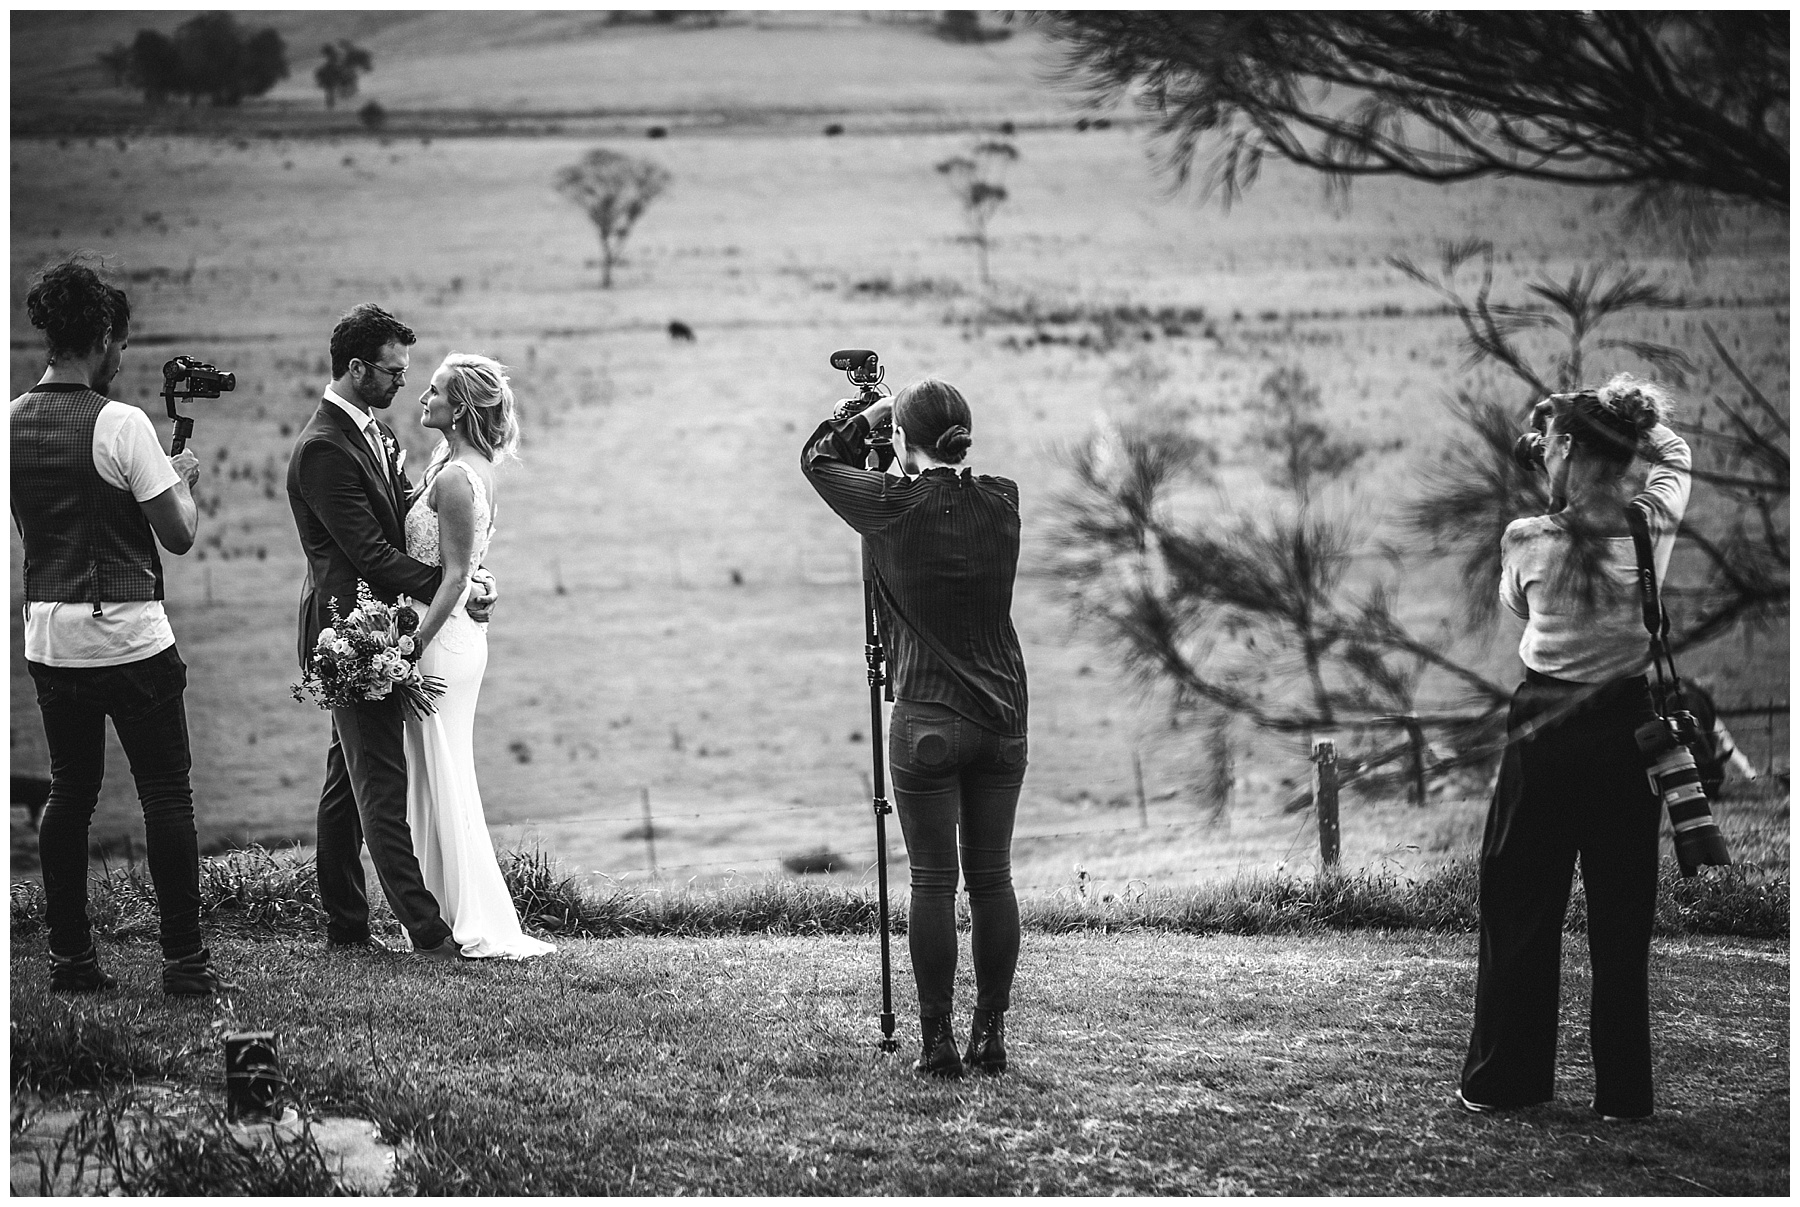 Videographers and photographer at work on wedding day